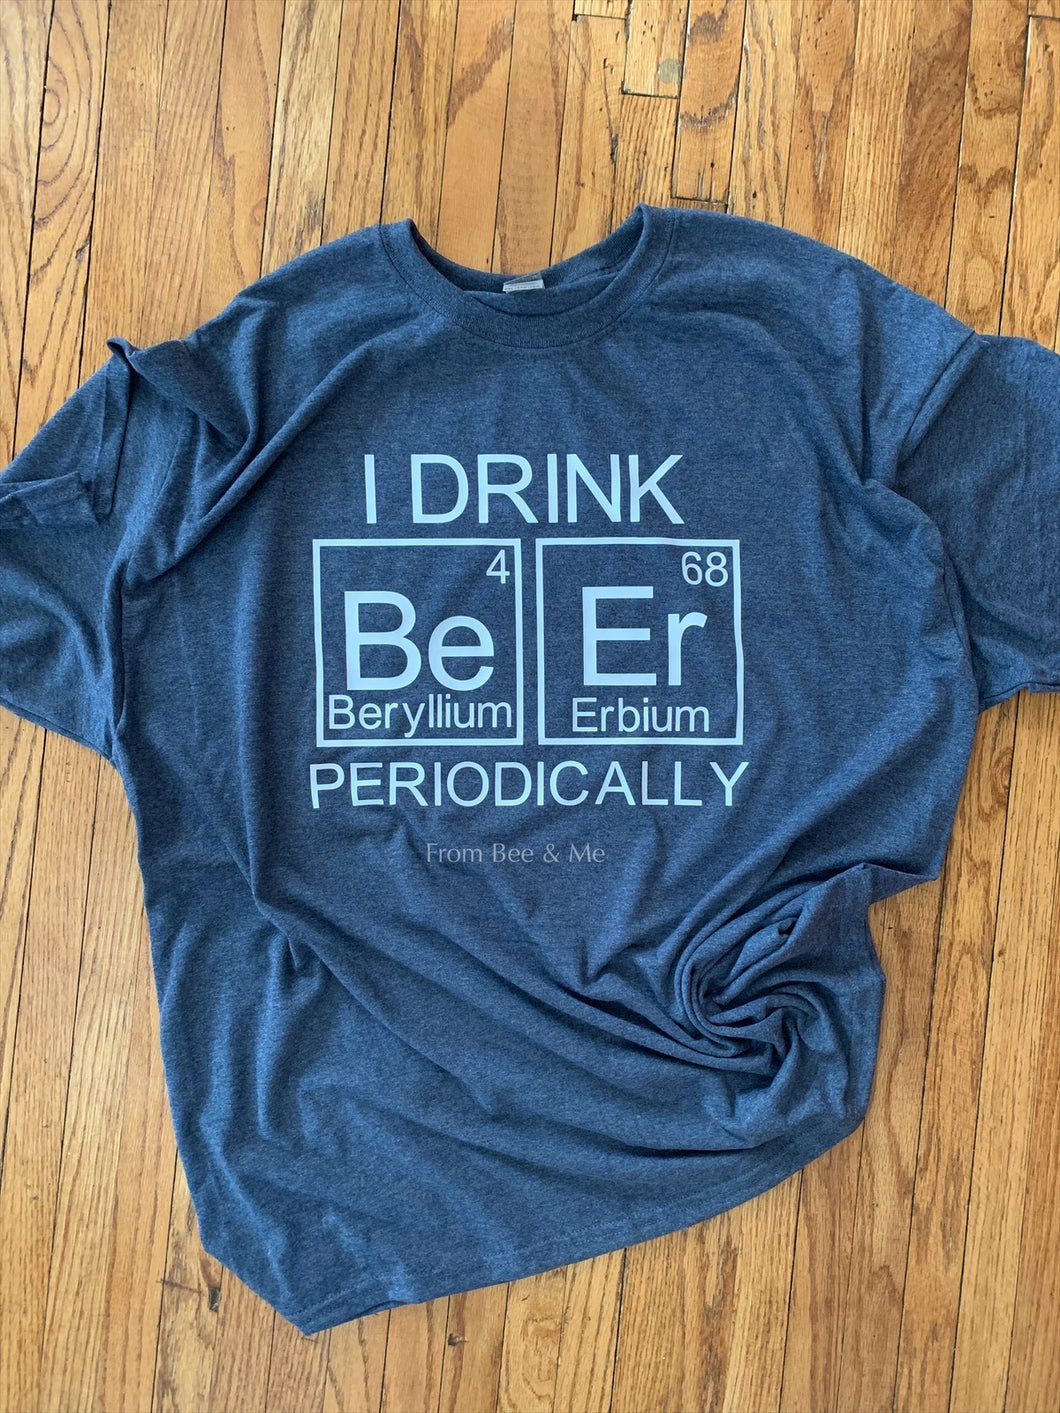 I Drink Beer Periodically T-shirt